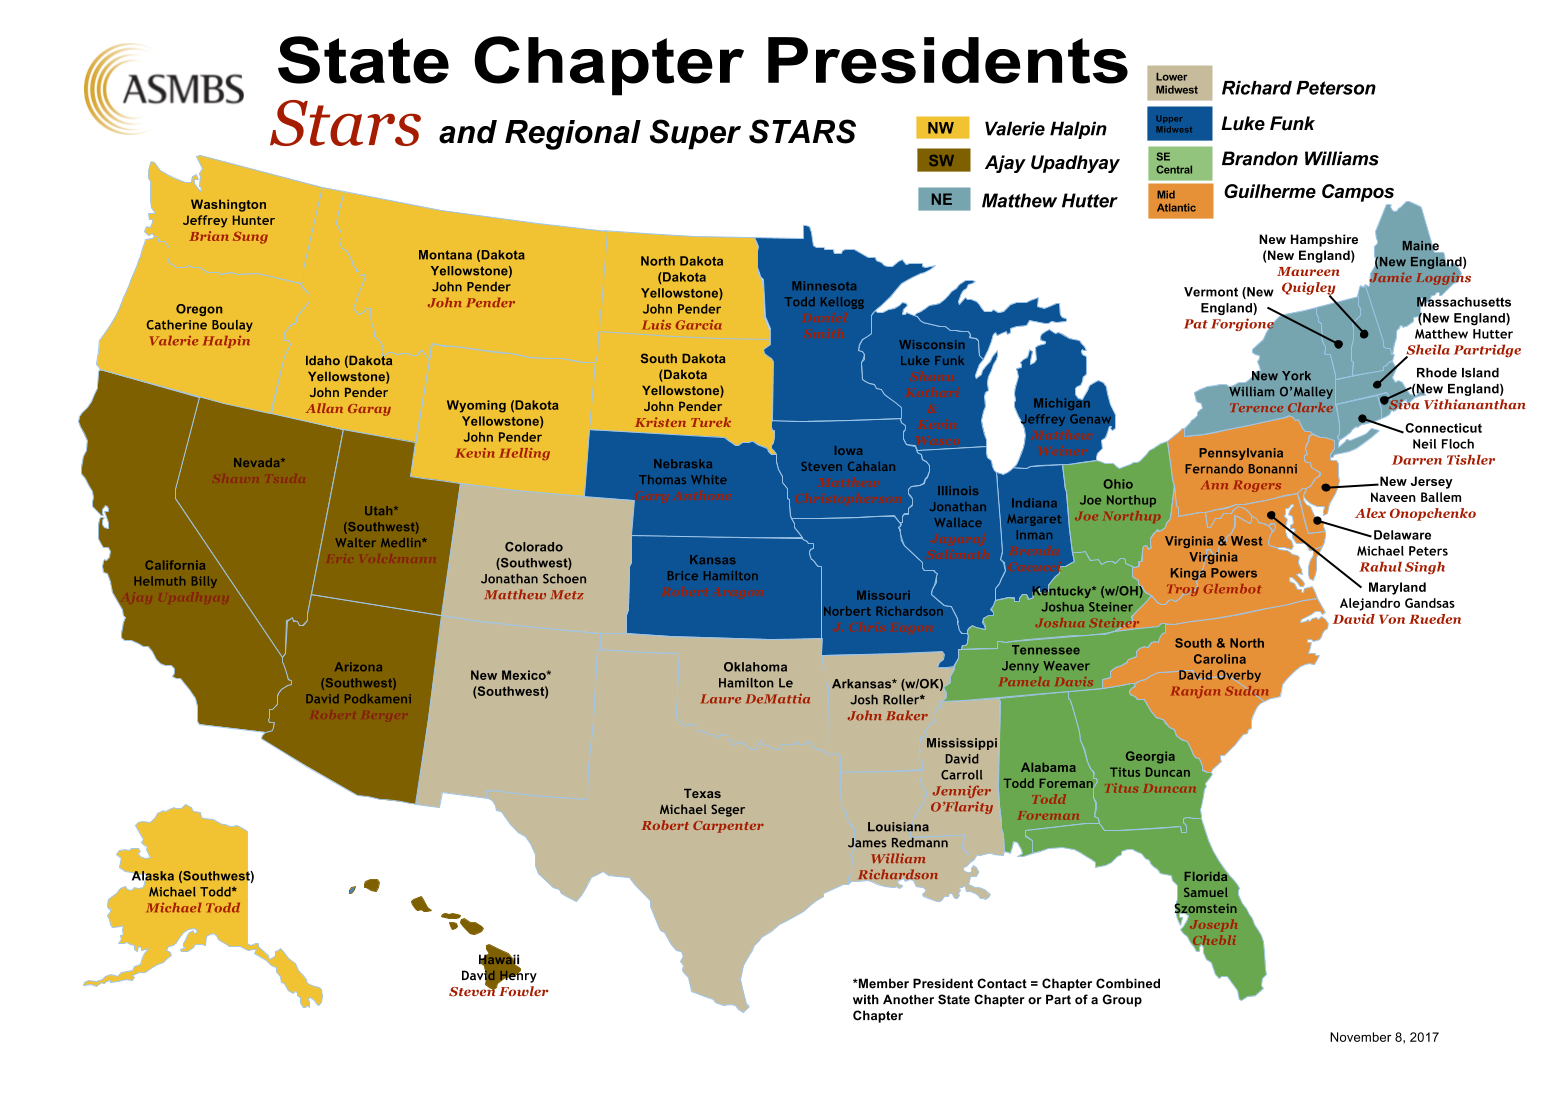 State-Chapter-President-and-Star-Map-110817-1.png""